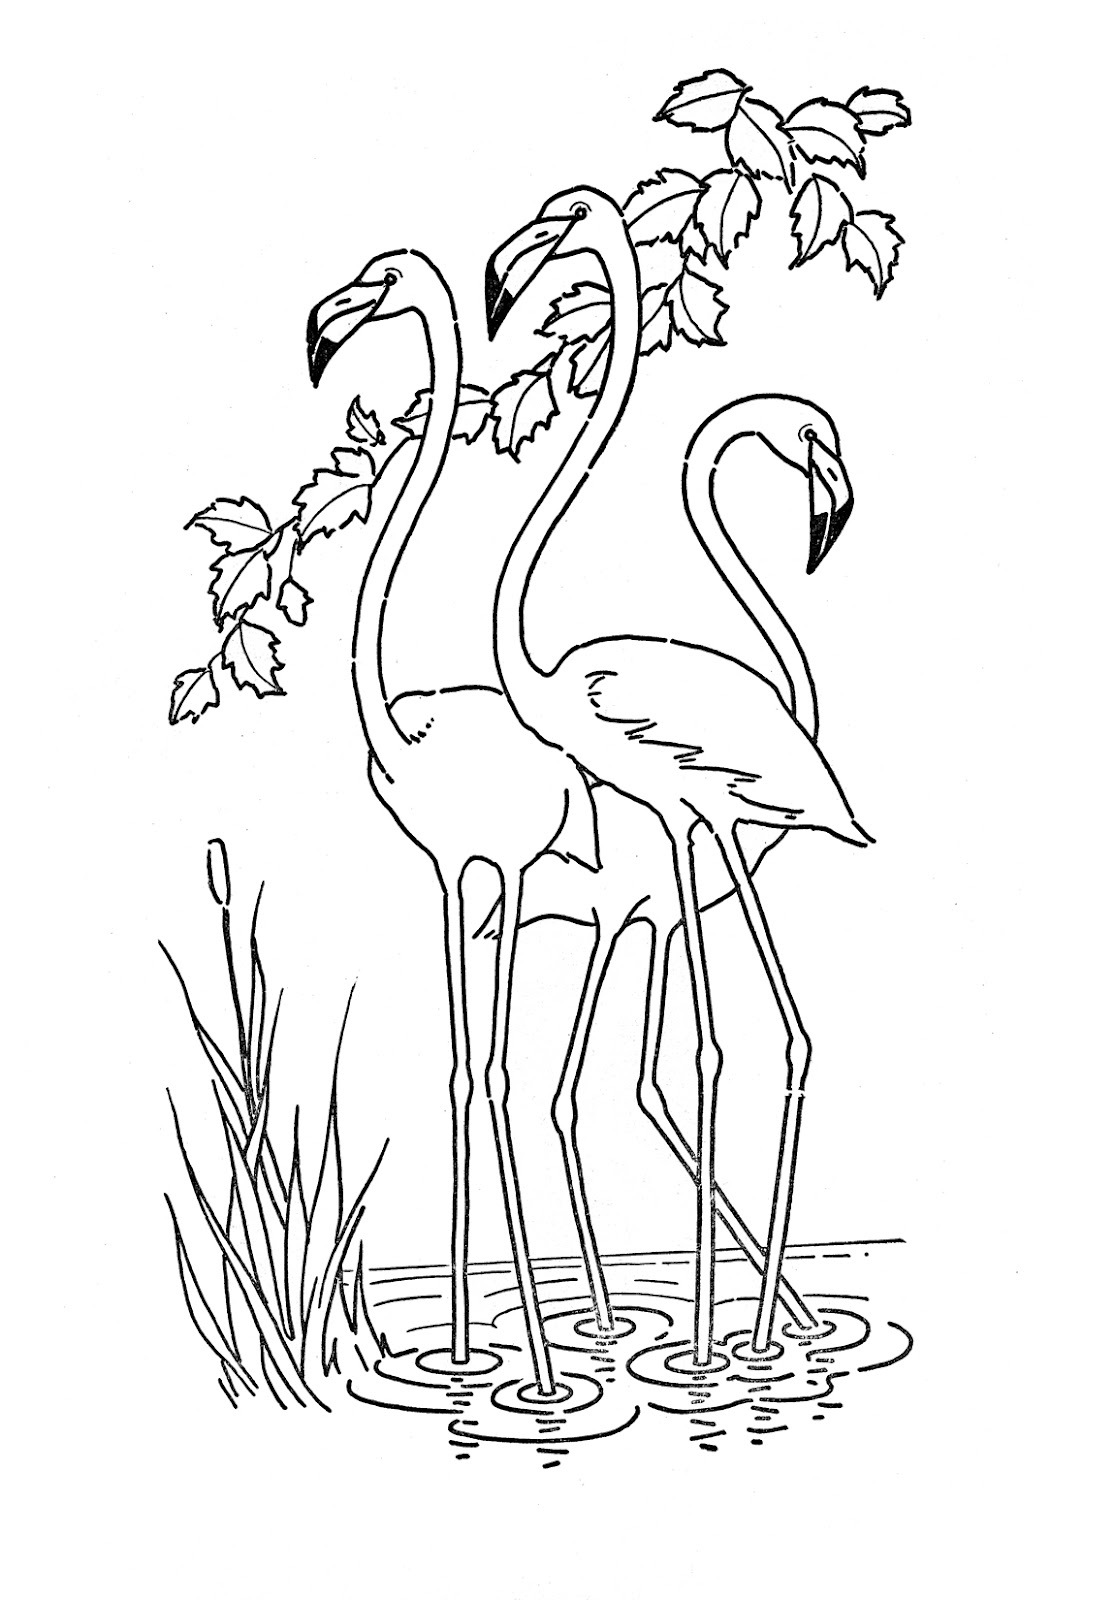 coloring page pdf 20 preschool coloring pages free word pdf jpeg png pdf page coloring